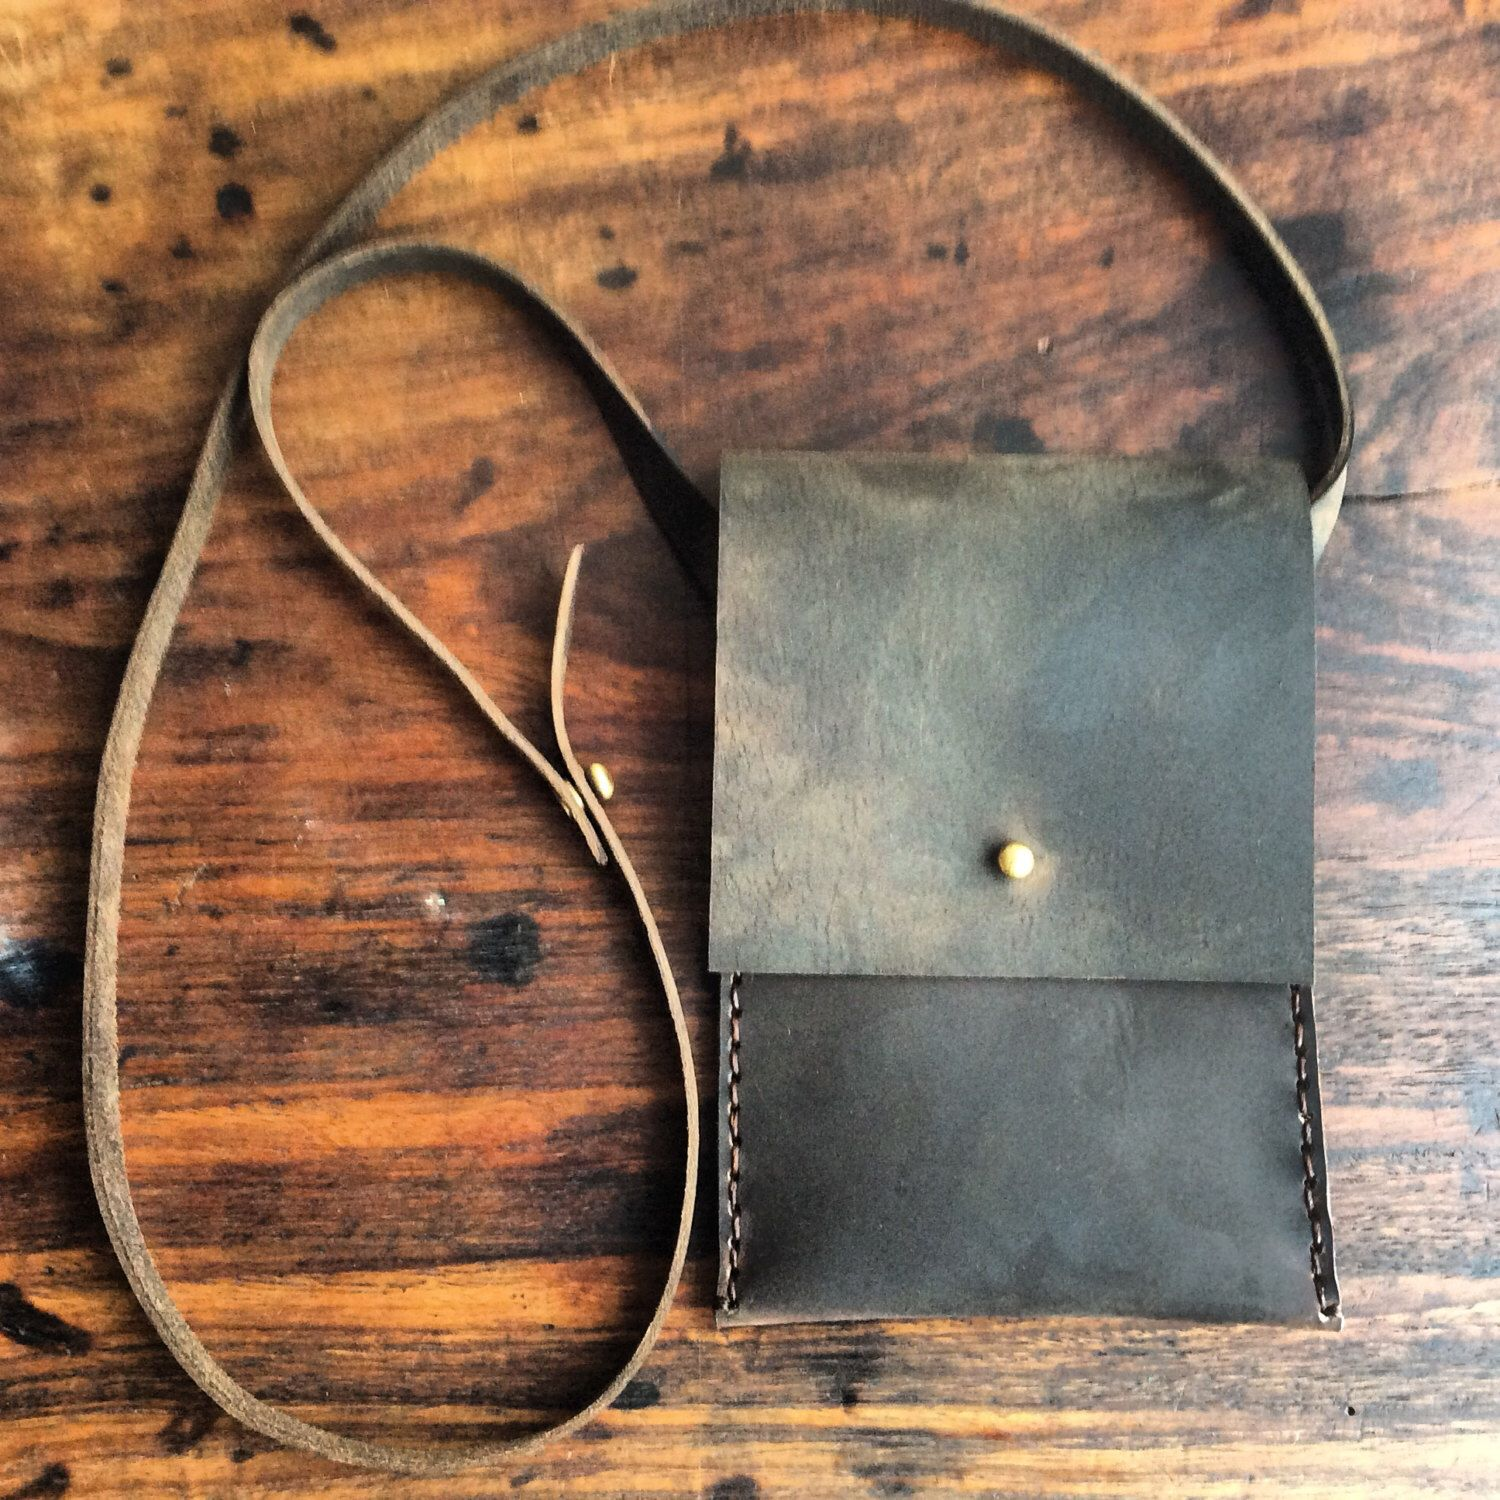 W33rd iPhone6 plus bag, handmade leather bag, cross-body iPhone 6 case, handmade leather iPhone6 plus bags & cases by Aixa Sobin, bag maker by LUSCIOUSLEATHERNYC on Etsy https://www.etsy.com/listing/234314591/w33rd-iphone6-plus-bag-handmade-leather